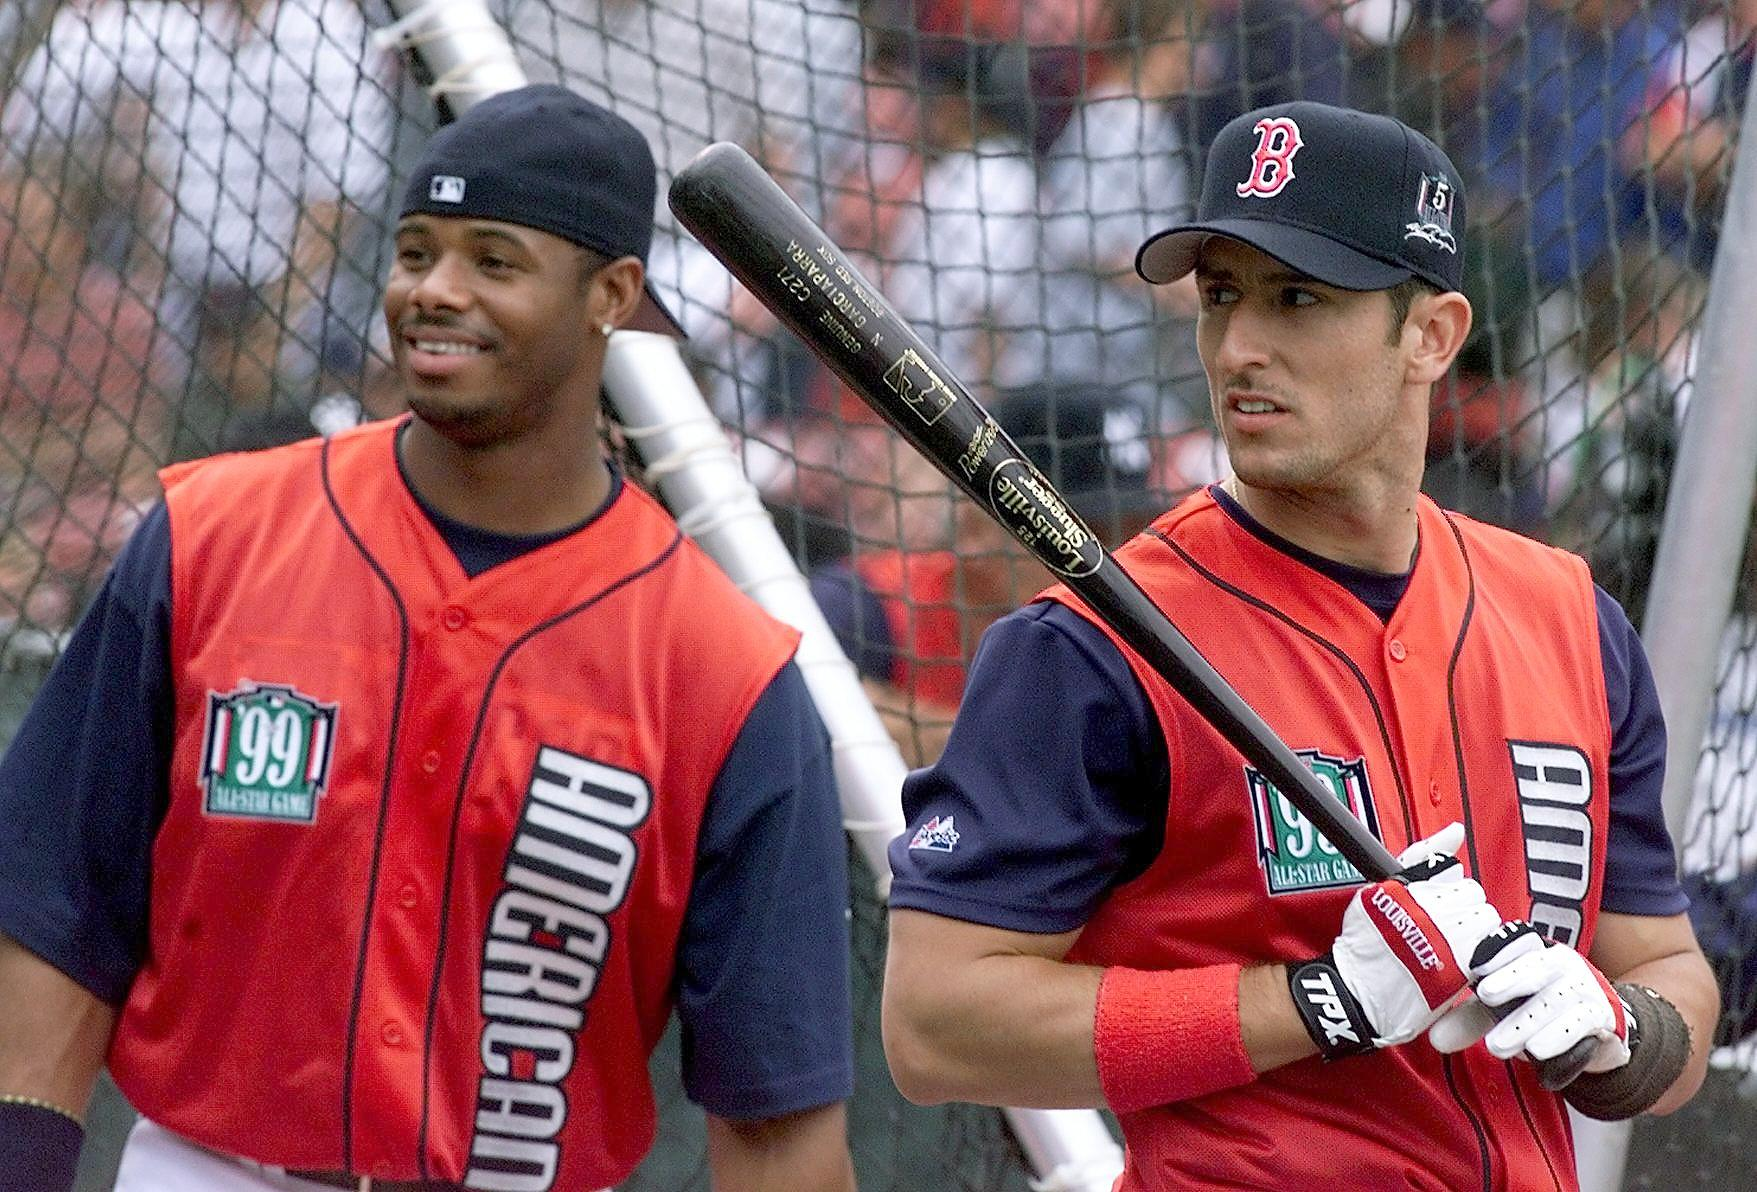 Ken Griffey Jr. of the Seattle Mariners and Nomar